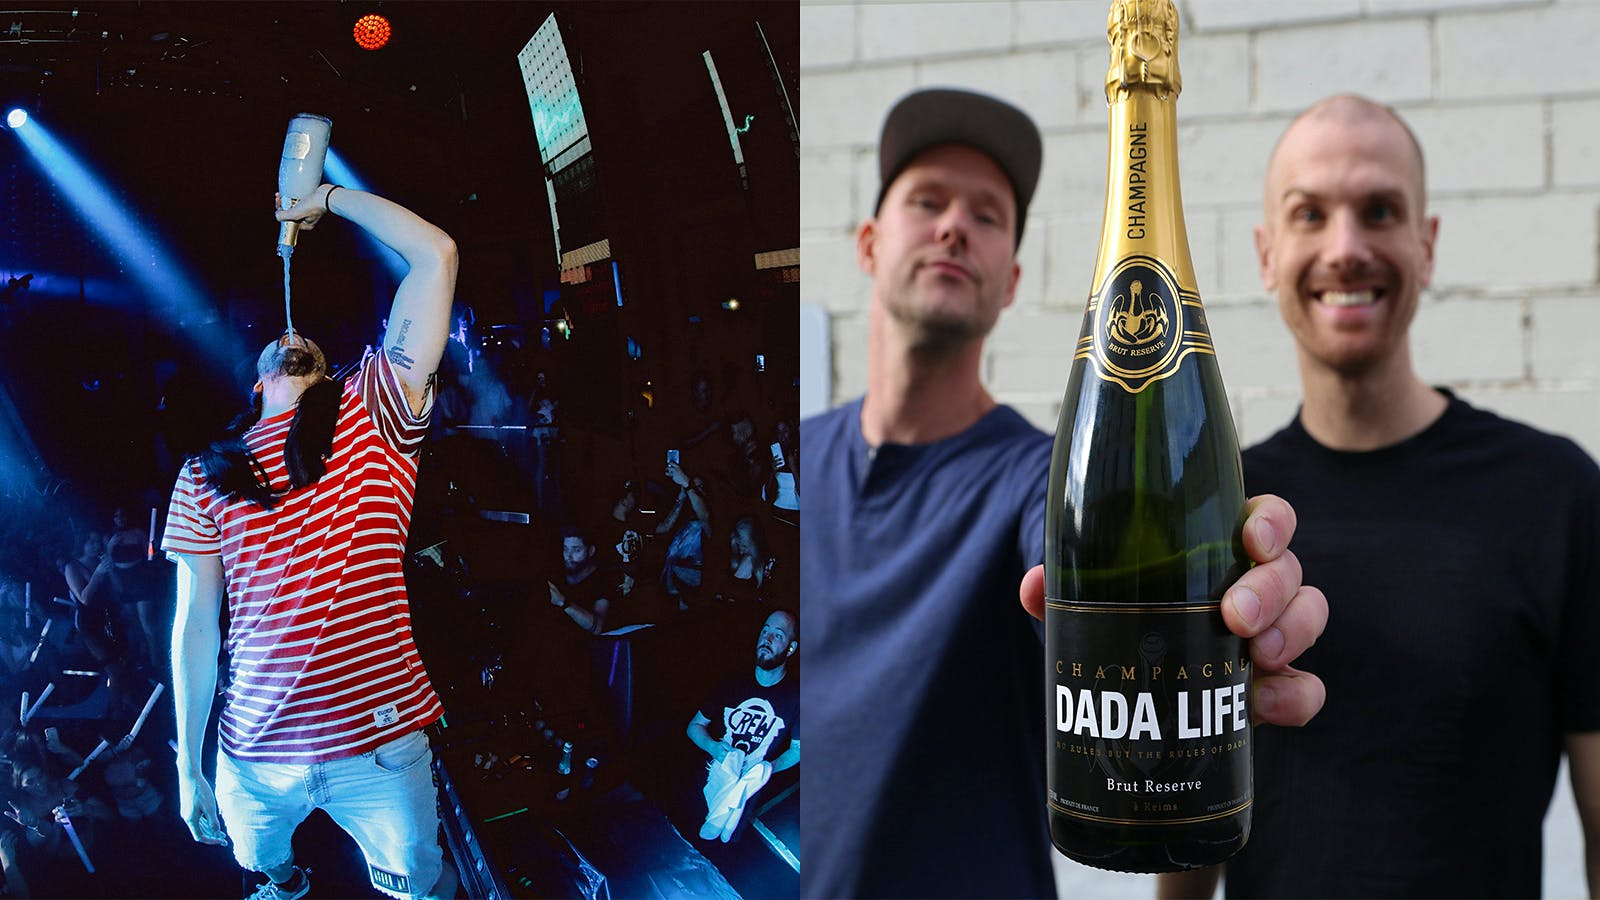 Champagne Earns '100-Point Score' for Sprayability from DJ Duo Dada Life